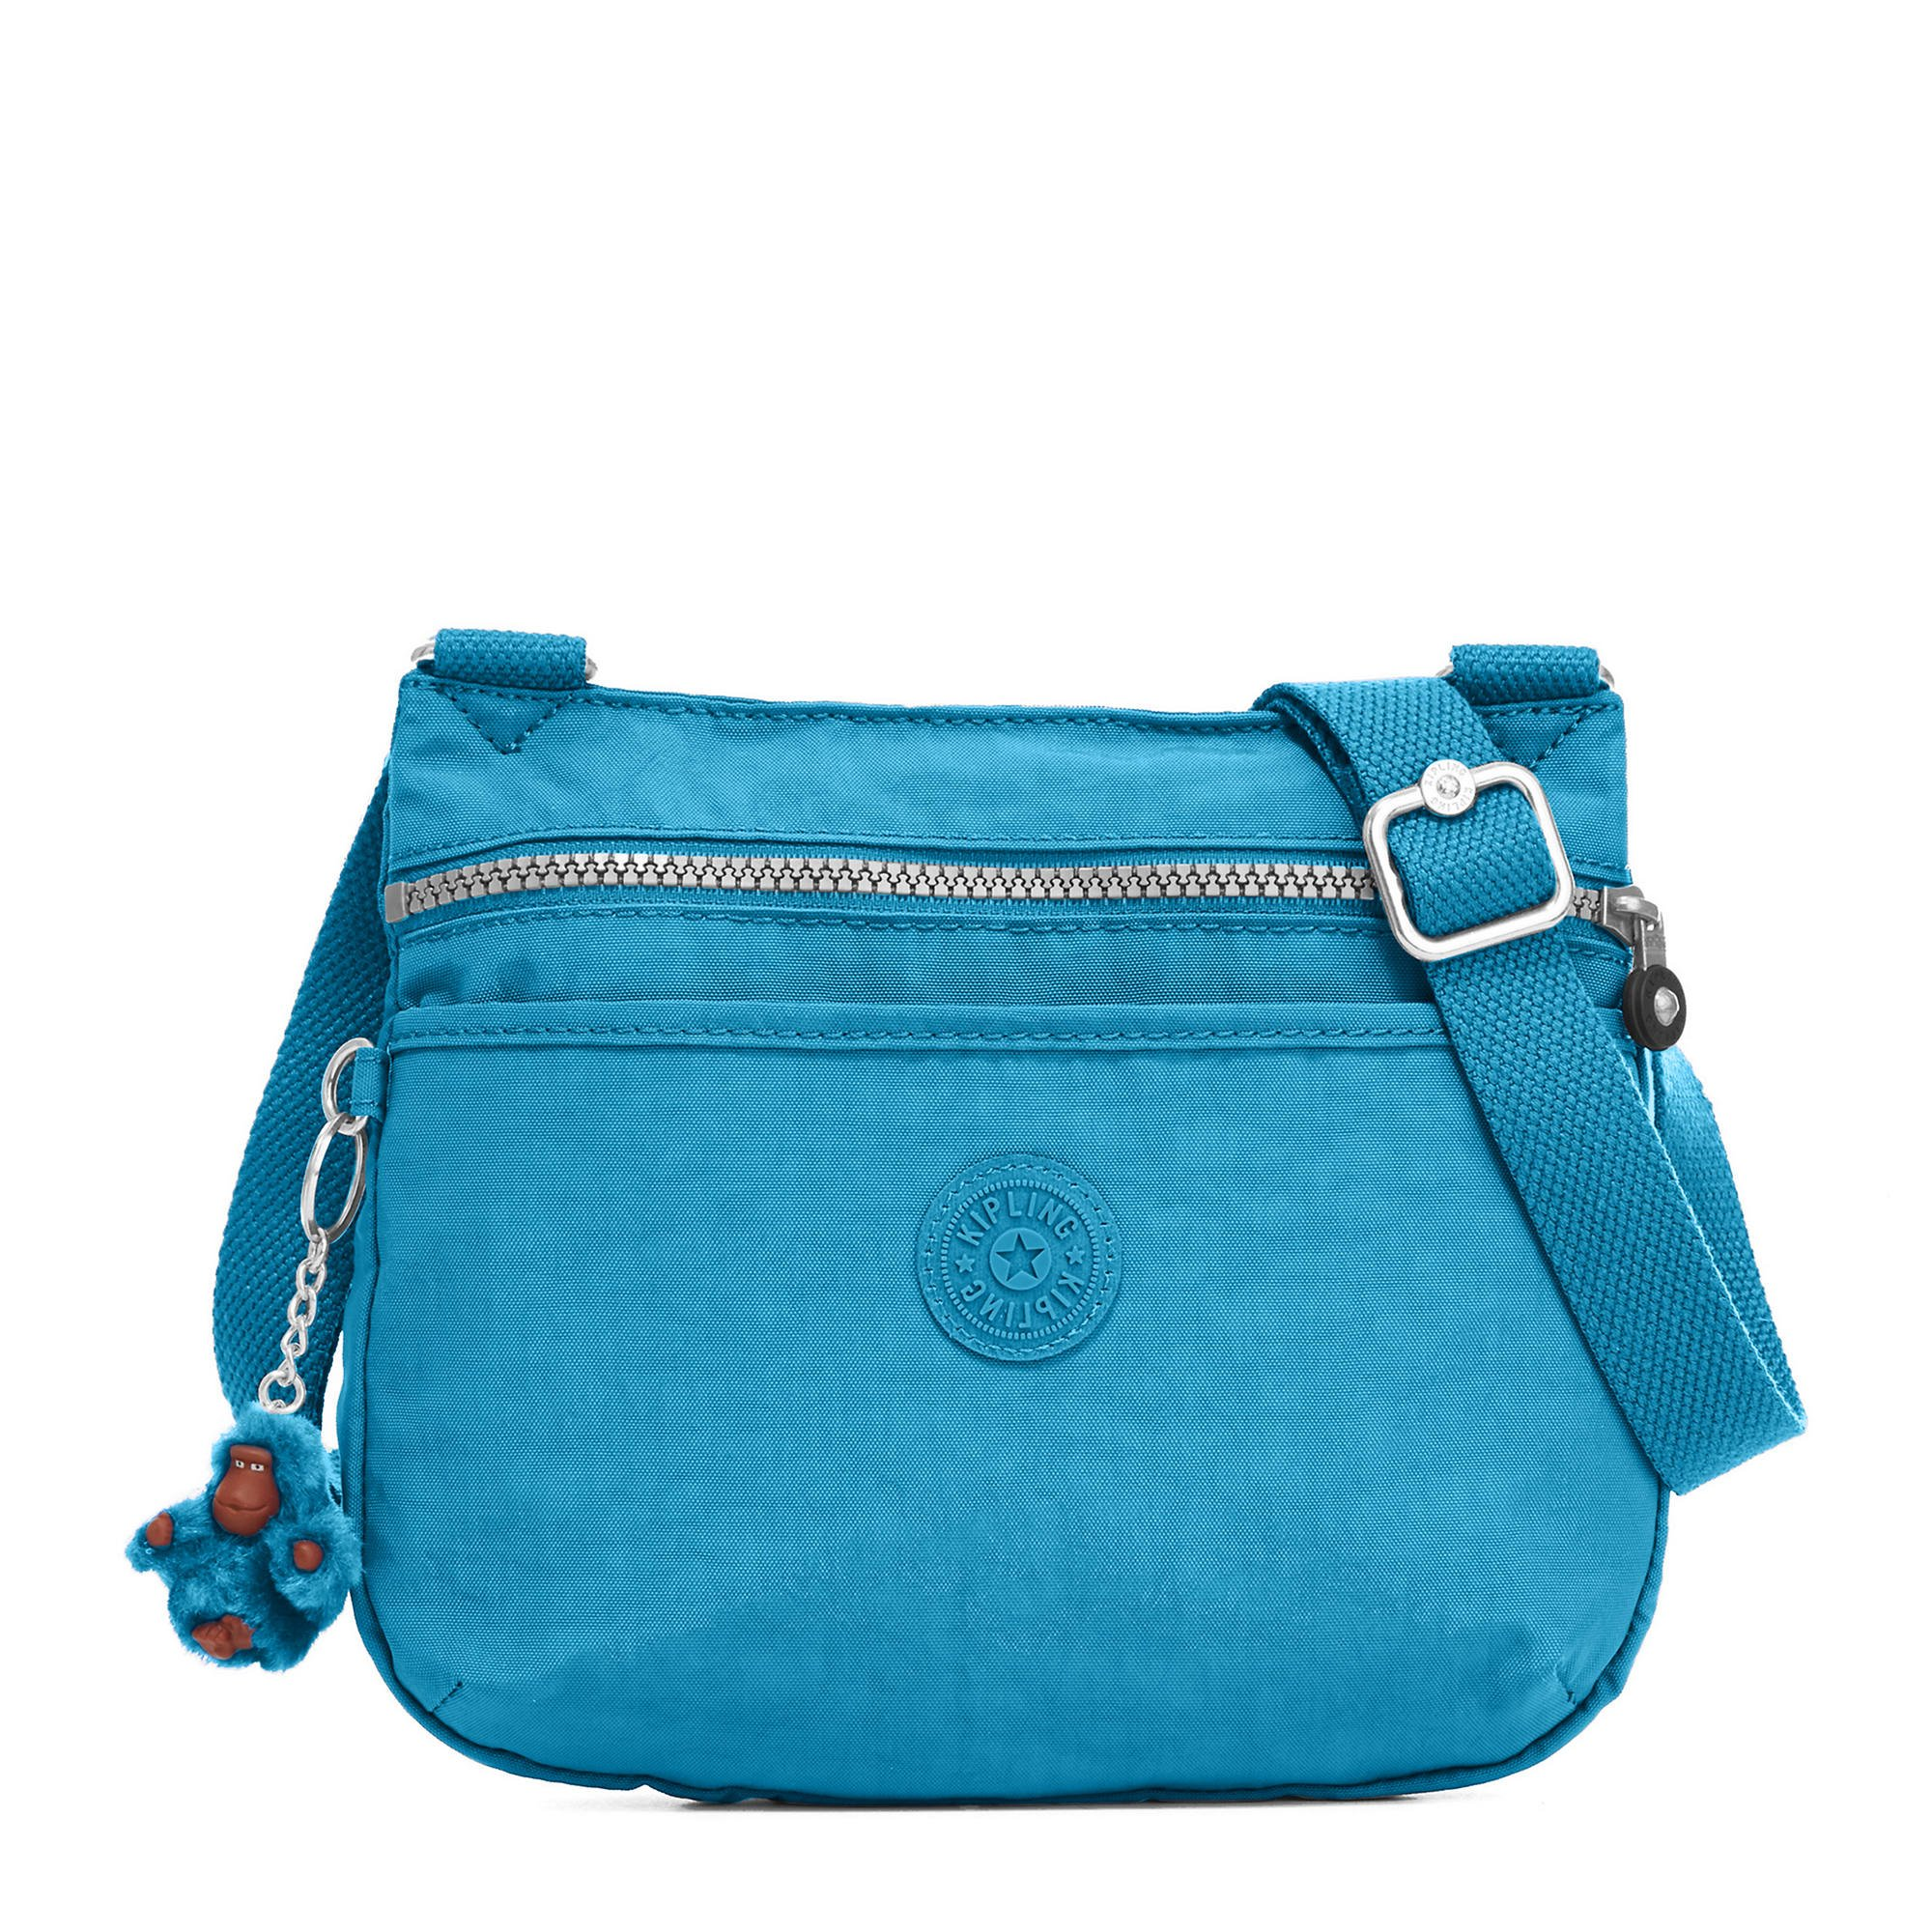 Kipling Women's Emmylou Crossbody Bag One Size Polaris Blue by Kipling